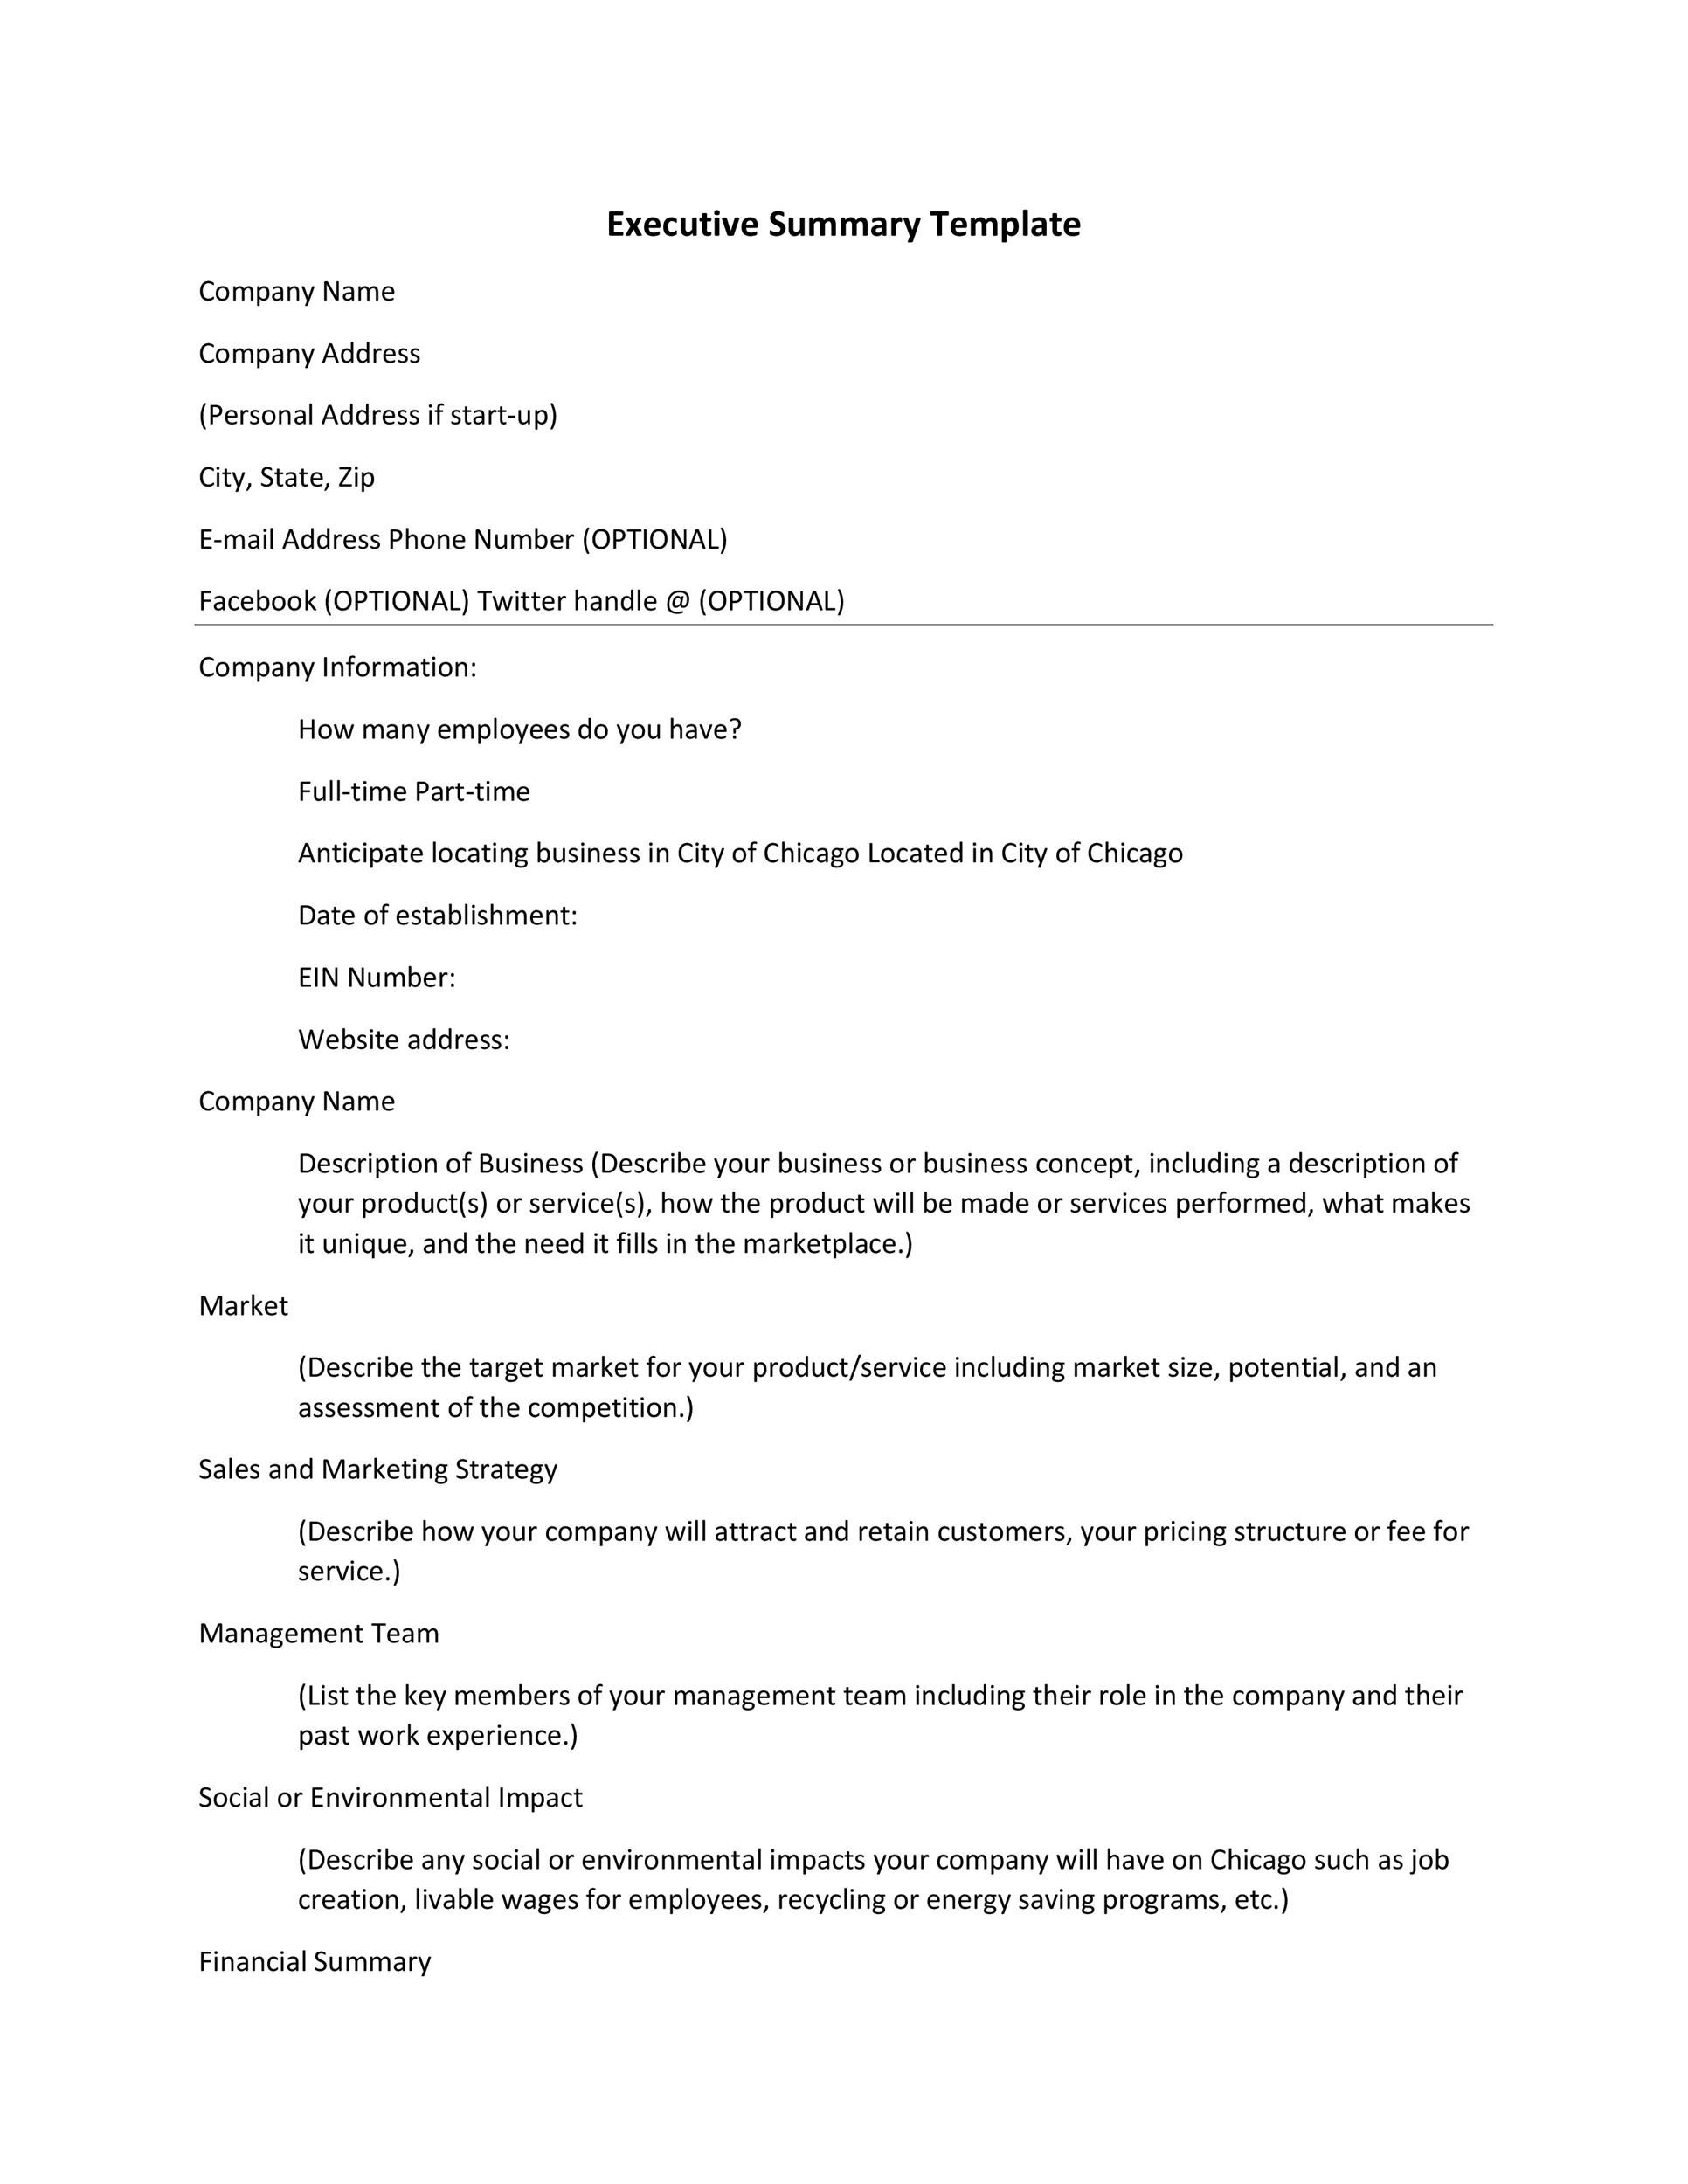 Executive Summary Templates  Business Summary Template